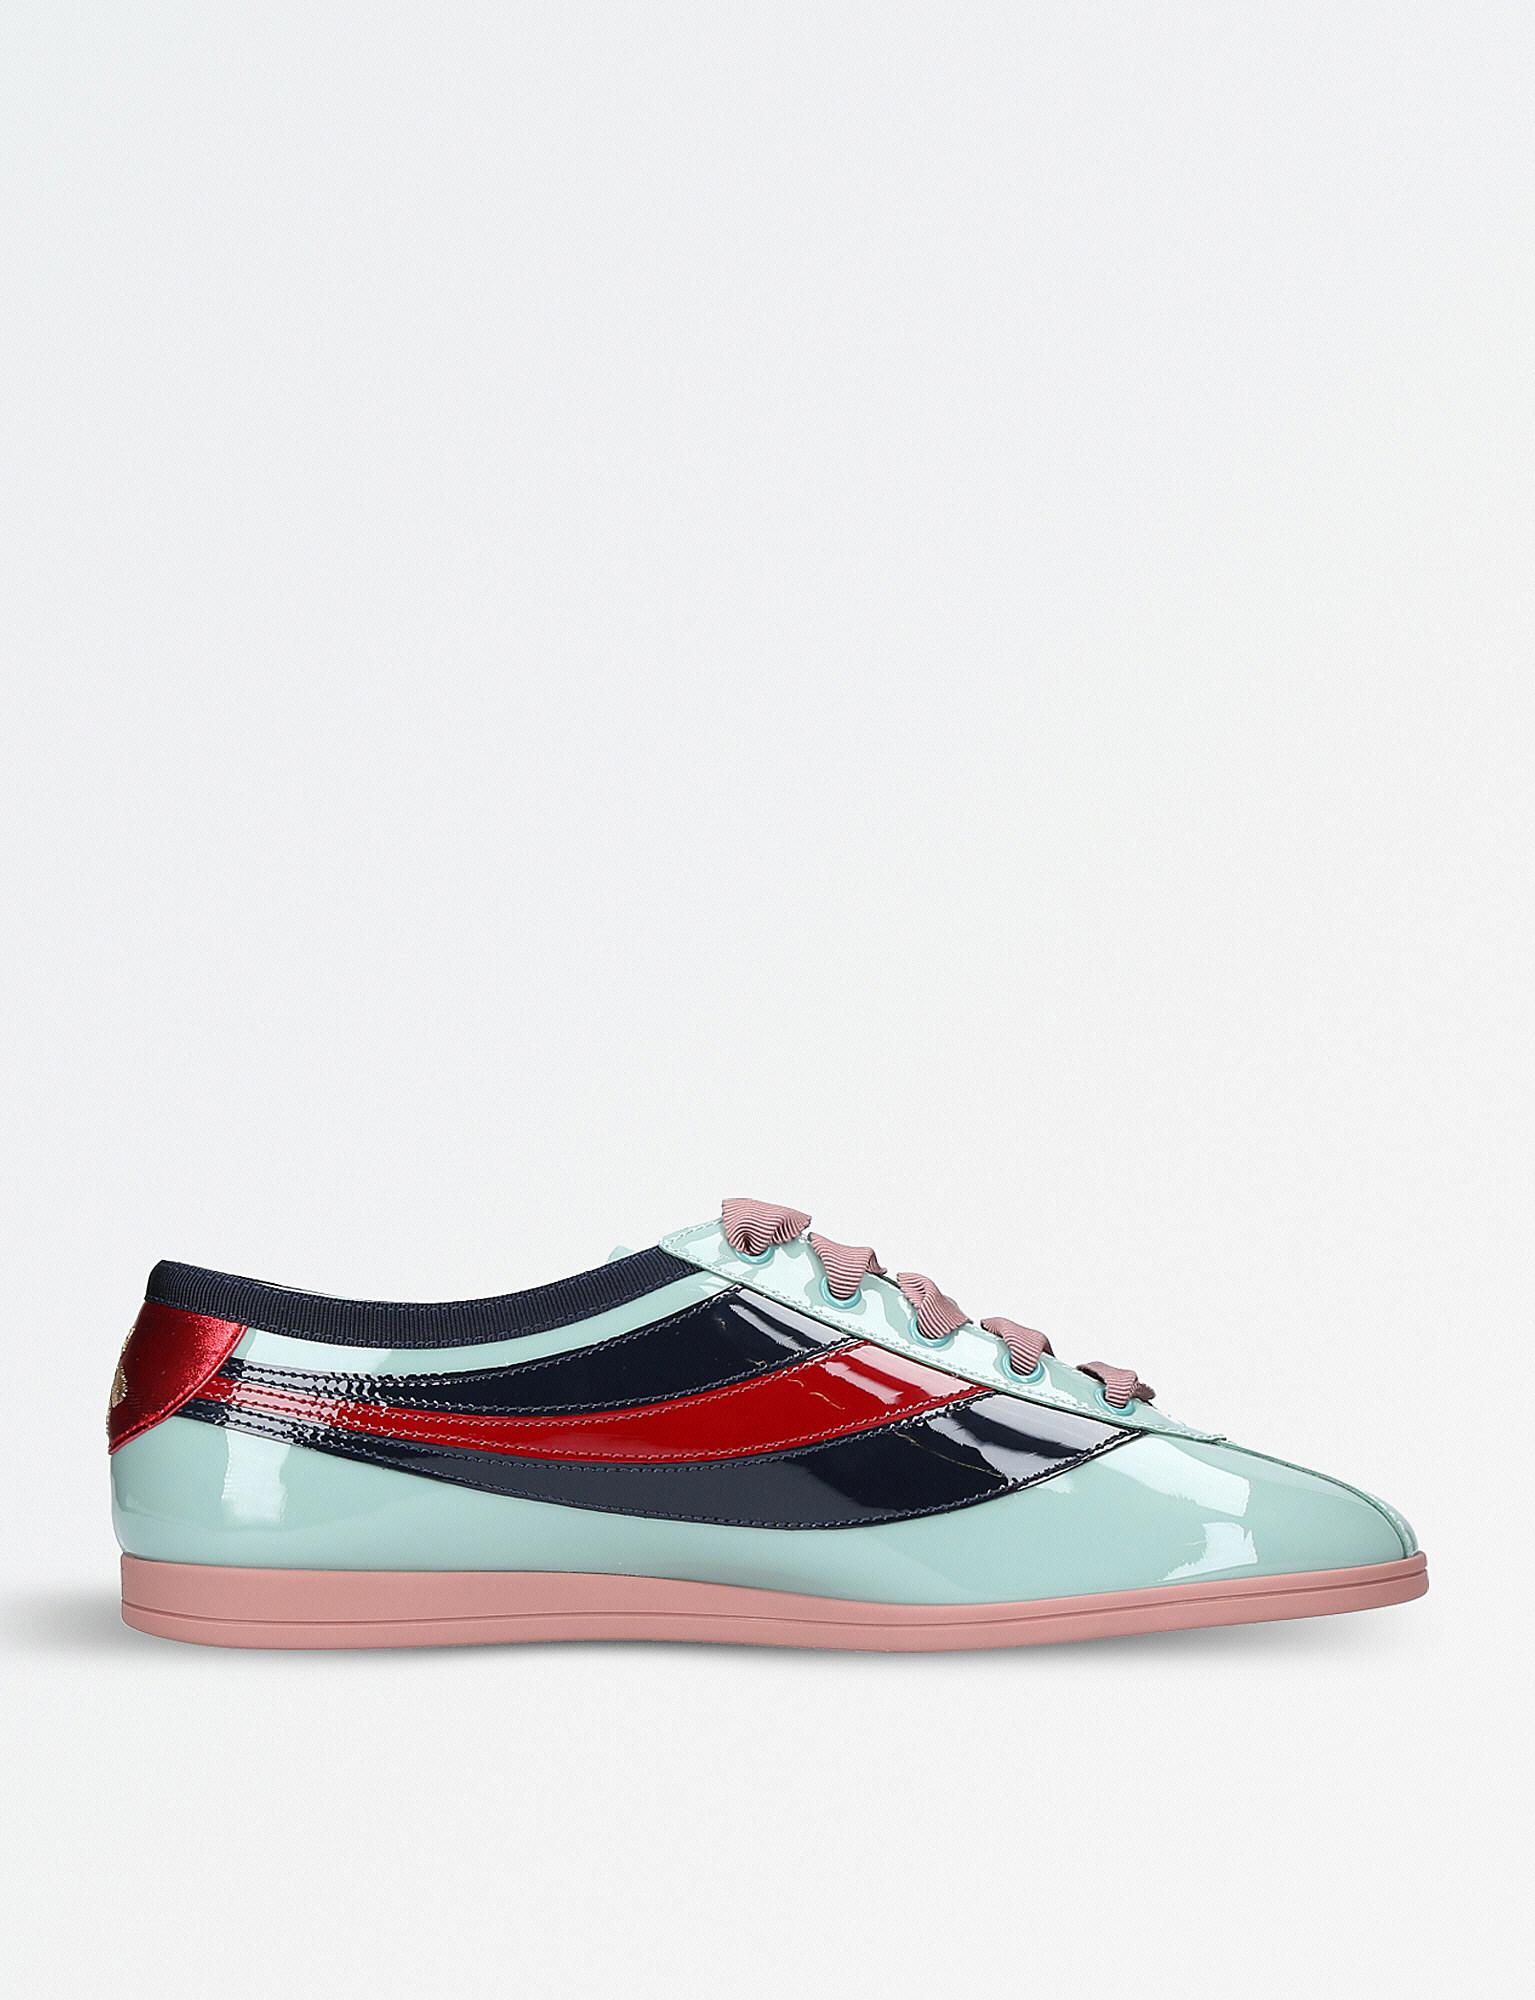 50bdff4db5f Gucci Falacer Patent Leather Sneakers in Blue - Lyst